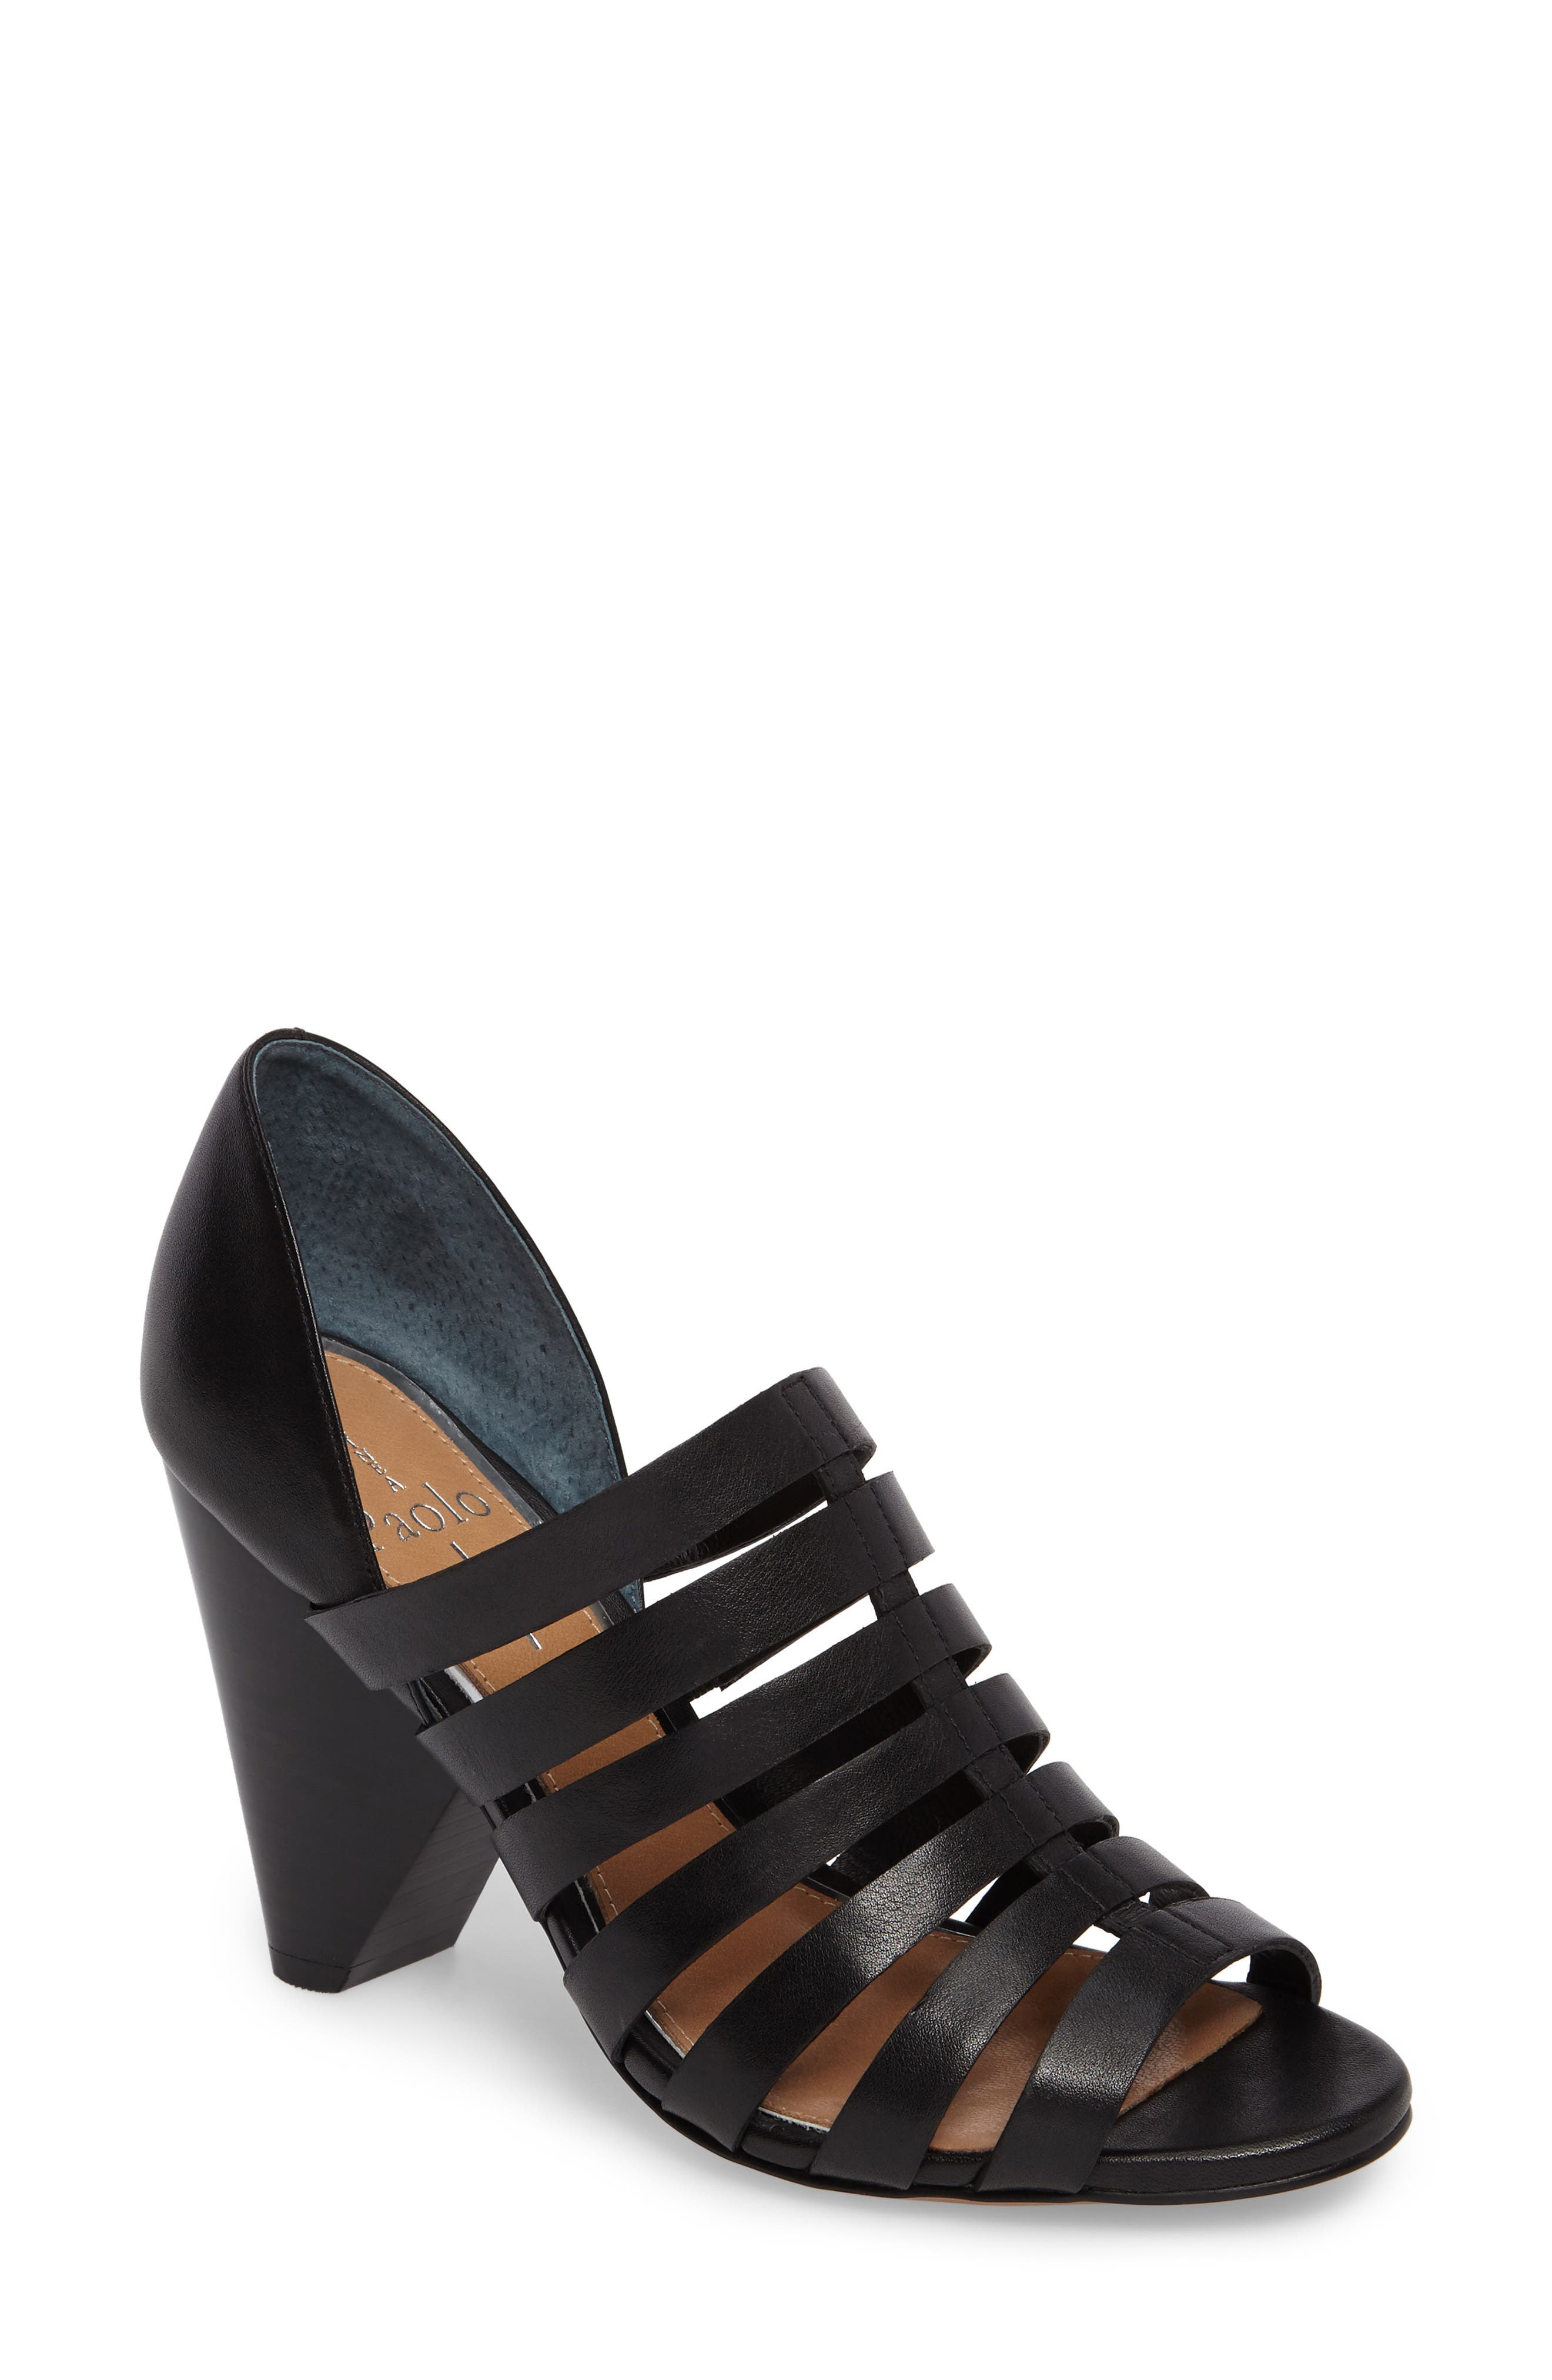 Alternate Image 1 Selected - Linea Paolo Pierce Chisel Heel Cage Sandal (Women)